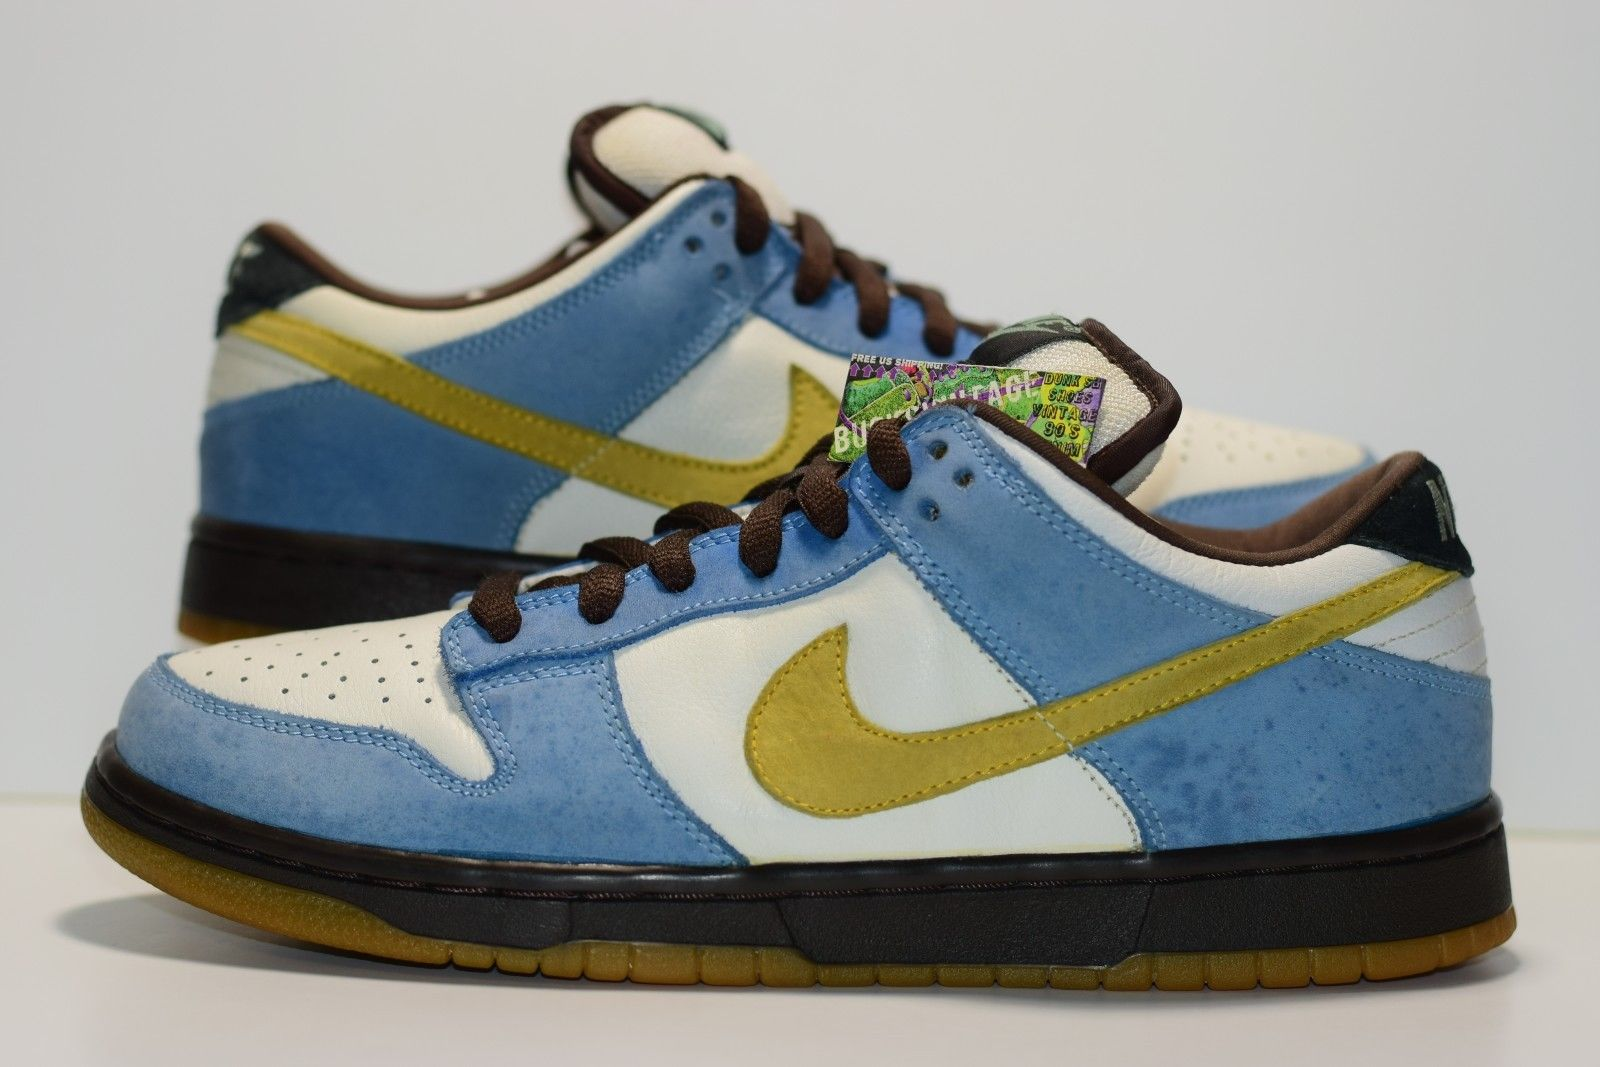 new product af0b7 164c8 Size 10 | 2004 Nike Dunk Low Pro SB HOMER Authentic 304292-173 from  BucksVintage